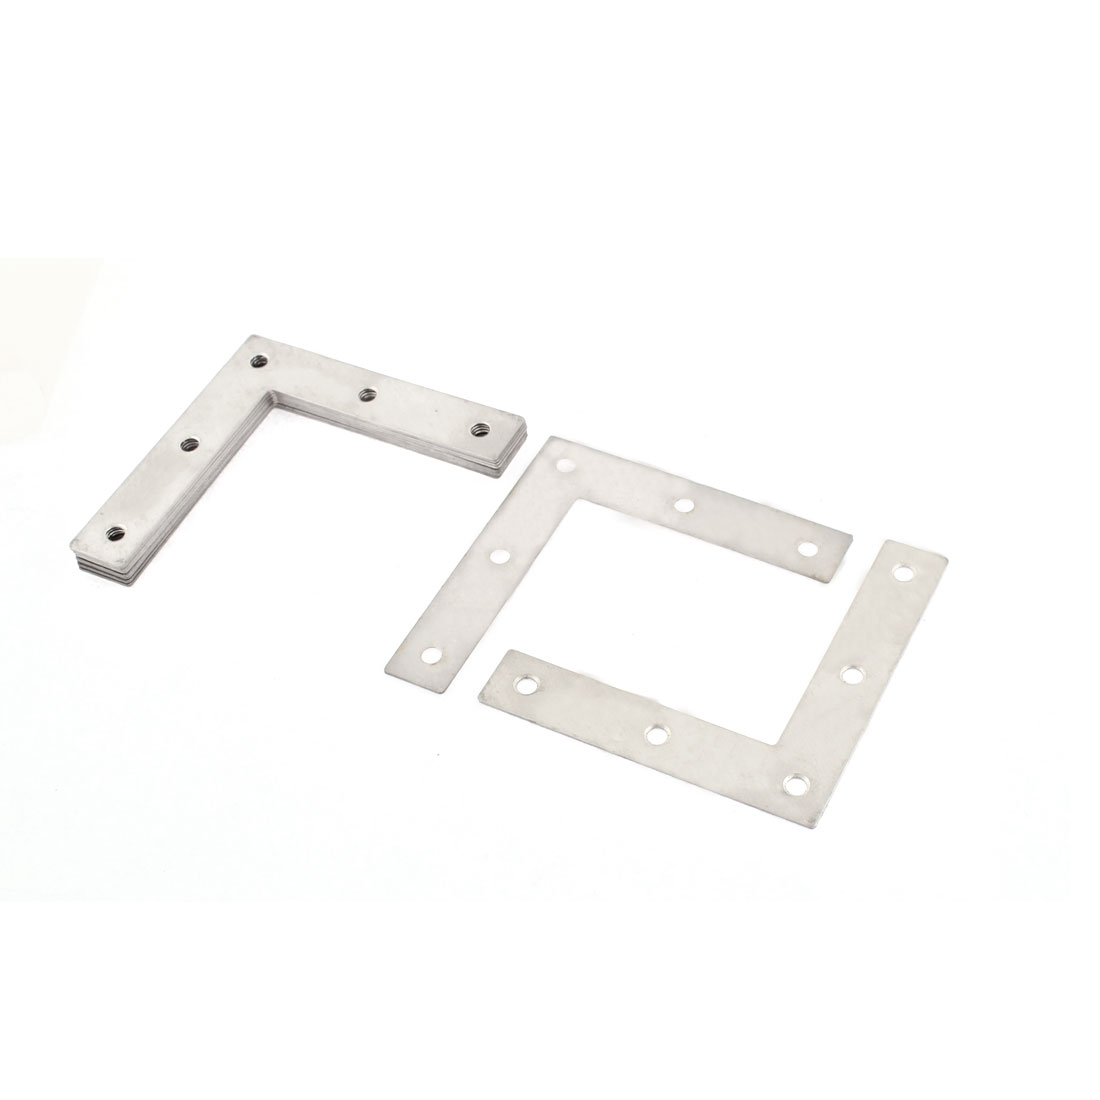 8cm x 1.5cm x 8cm Furniture L Shape Shelf Support Corner Brace Joint Metal Right Angle Bracket Fastener 10 Pcs